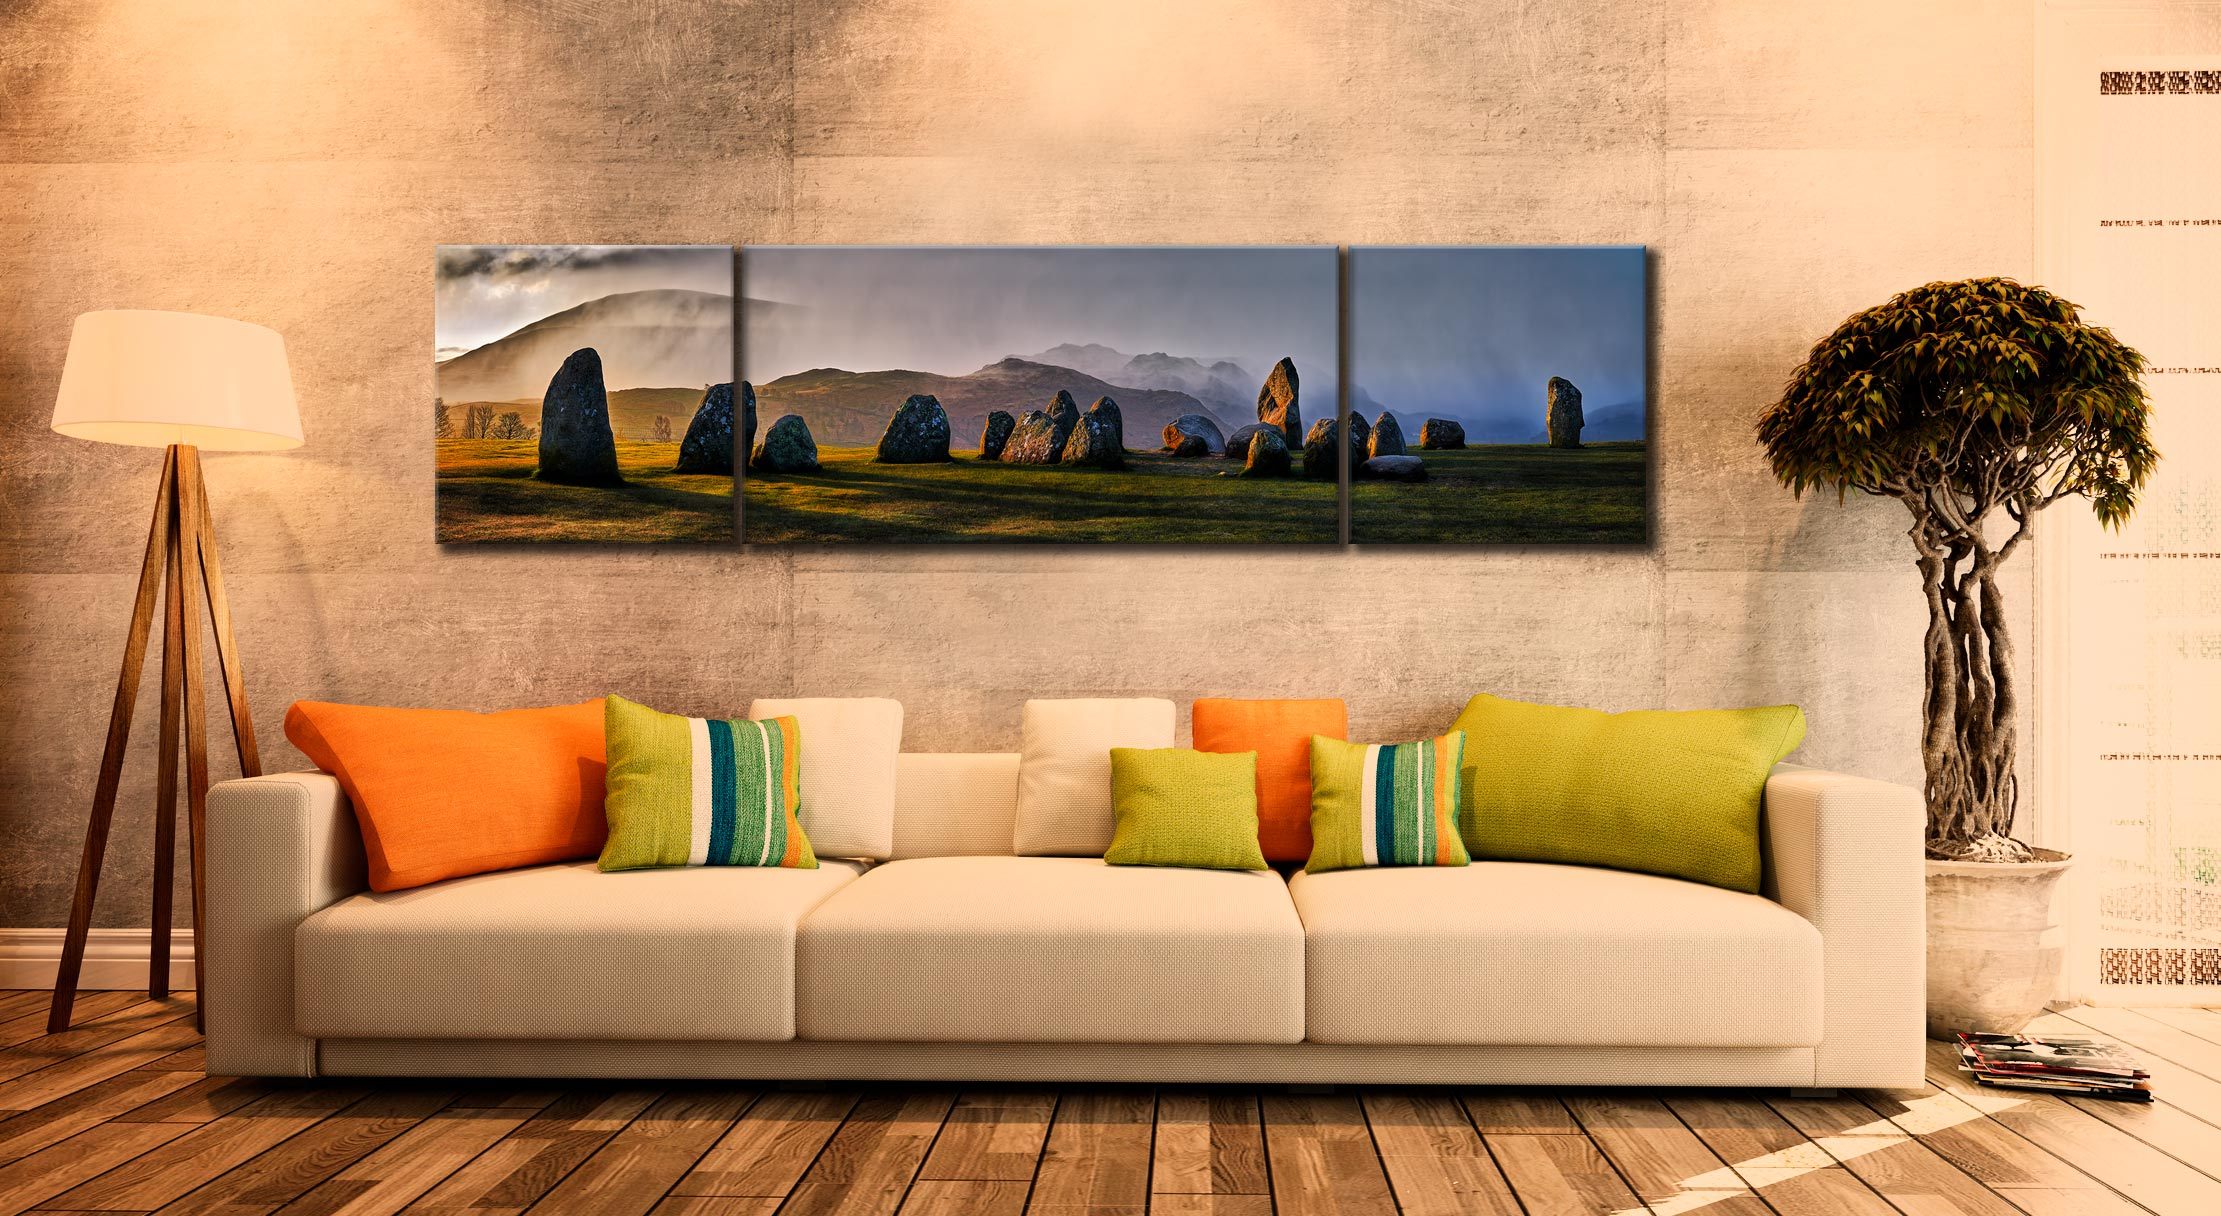 Sunlight and Showers at Castlerigg - 3 Panel Wide Centre Canvas on Wall